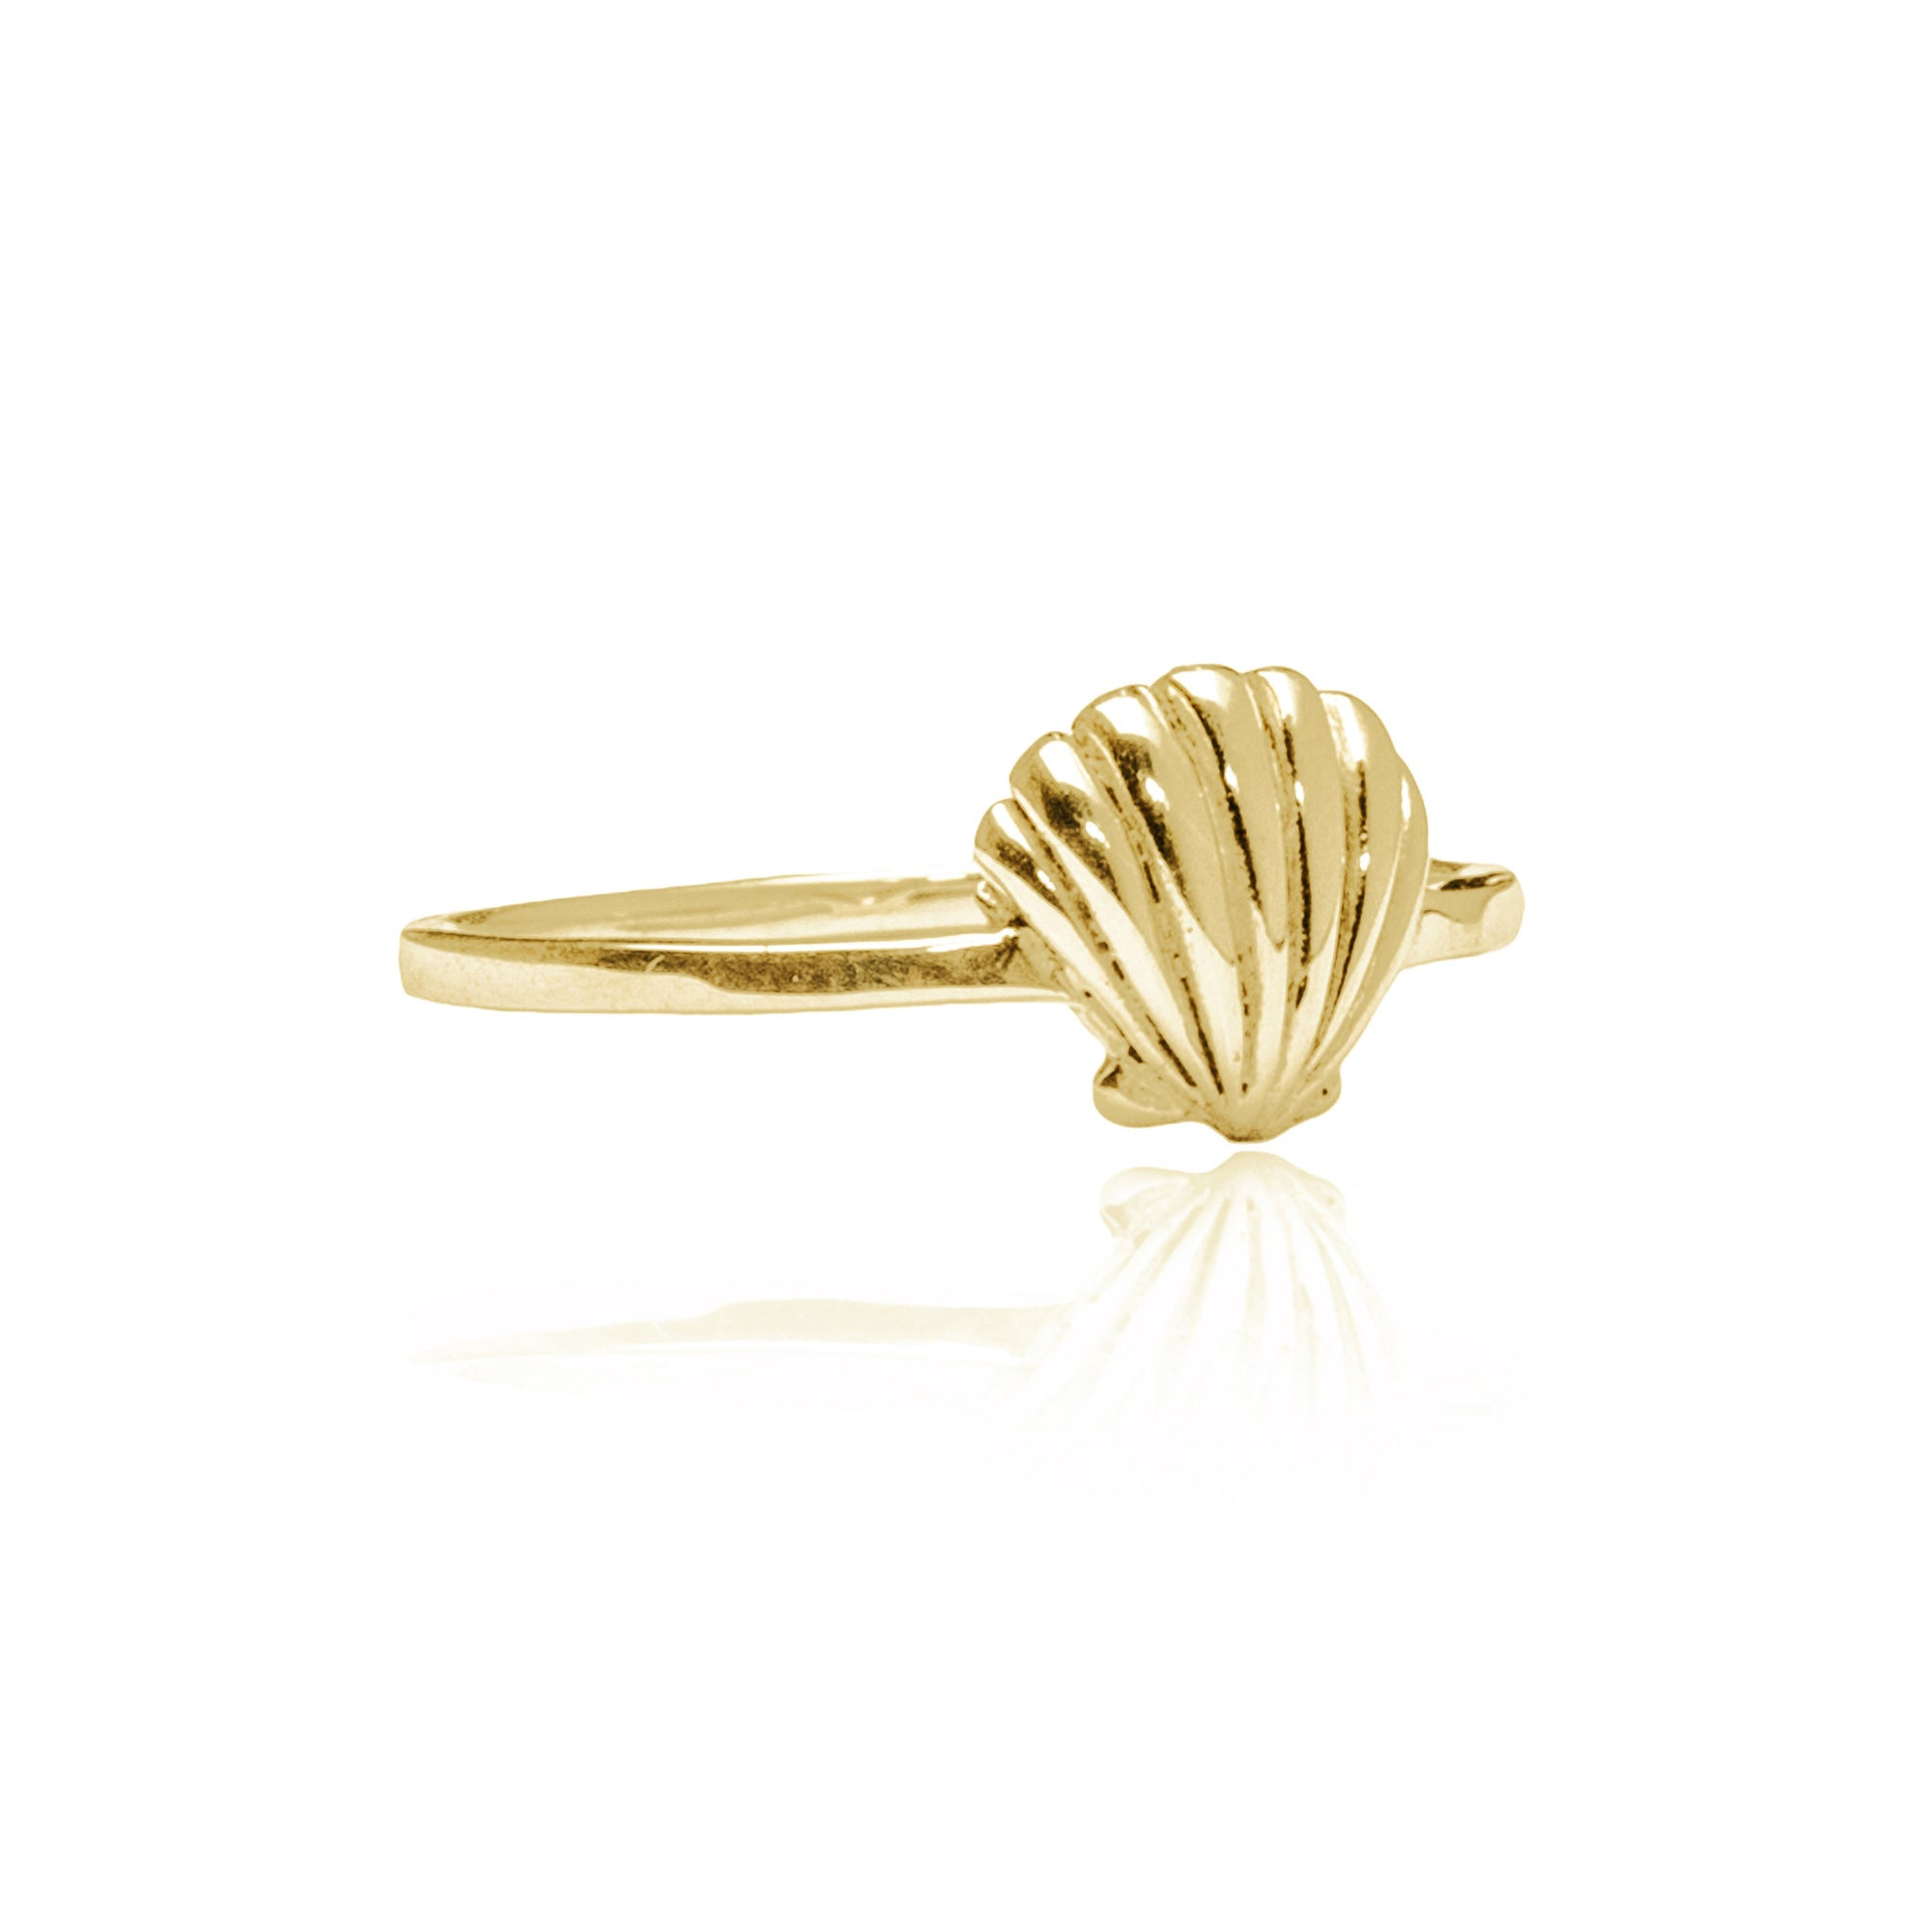 La Luna Rose Jewellery - Gold Shell Ring